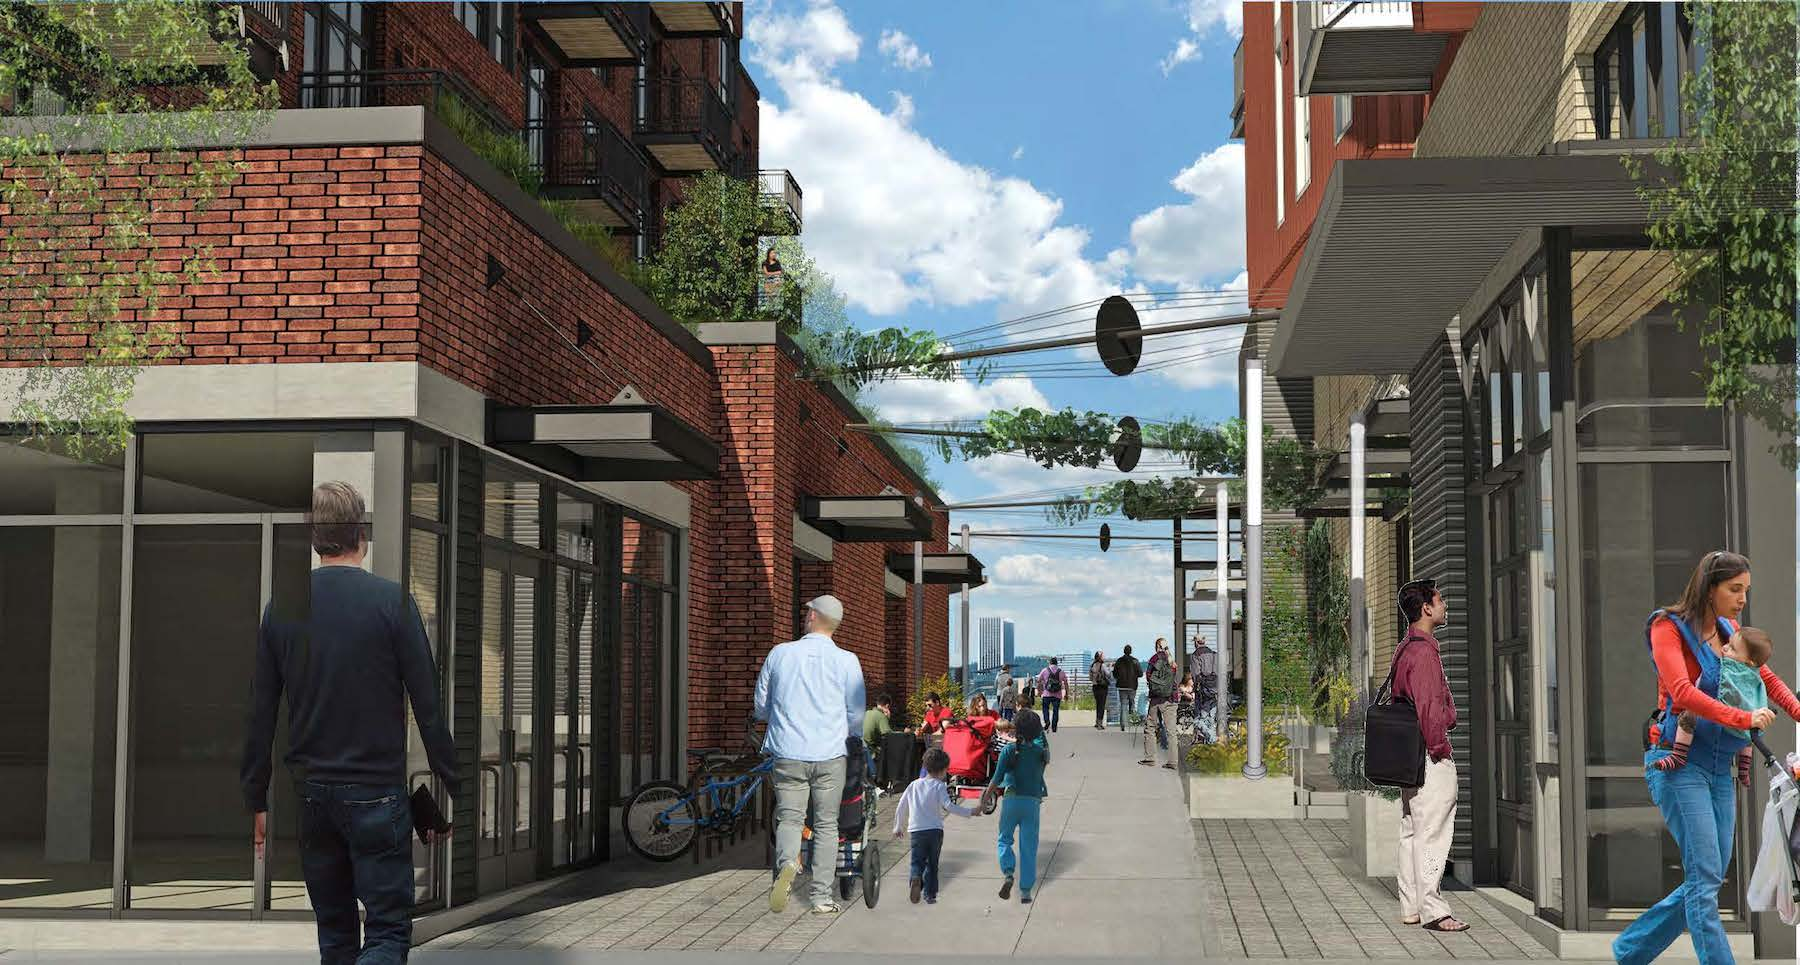 Two new retail tenants have been confirmed for the Goat Blocks development in SE Portland